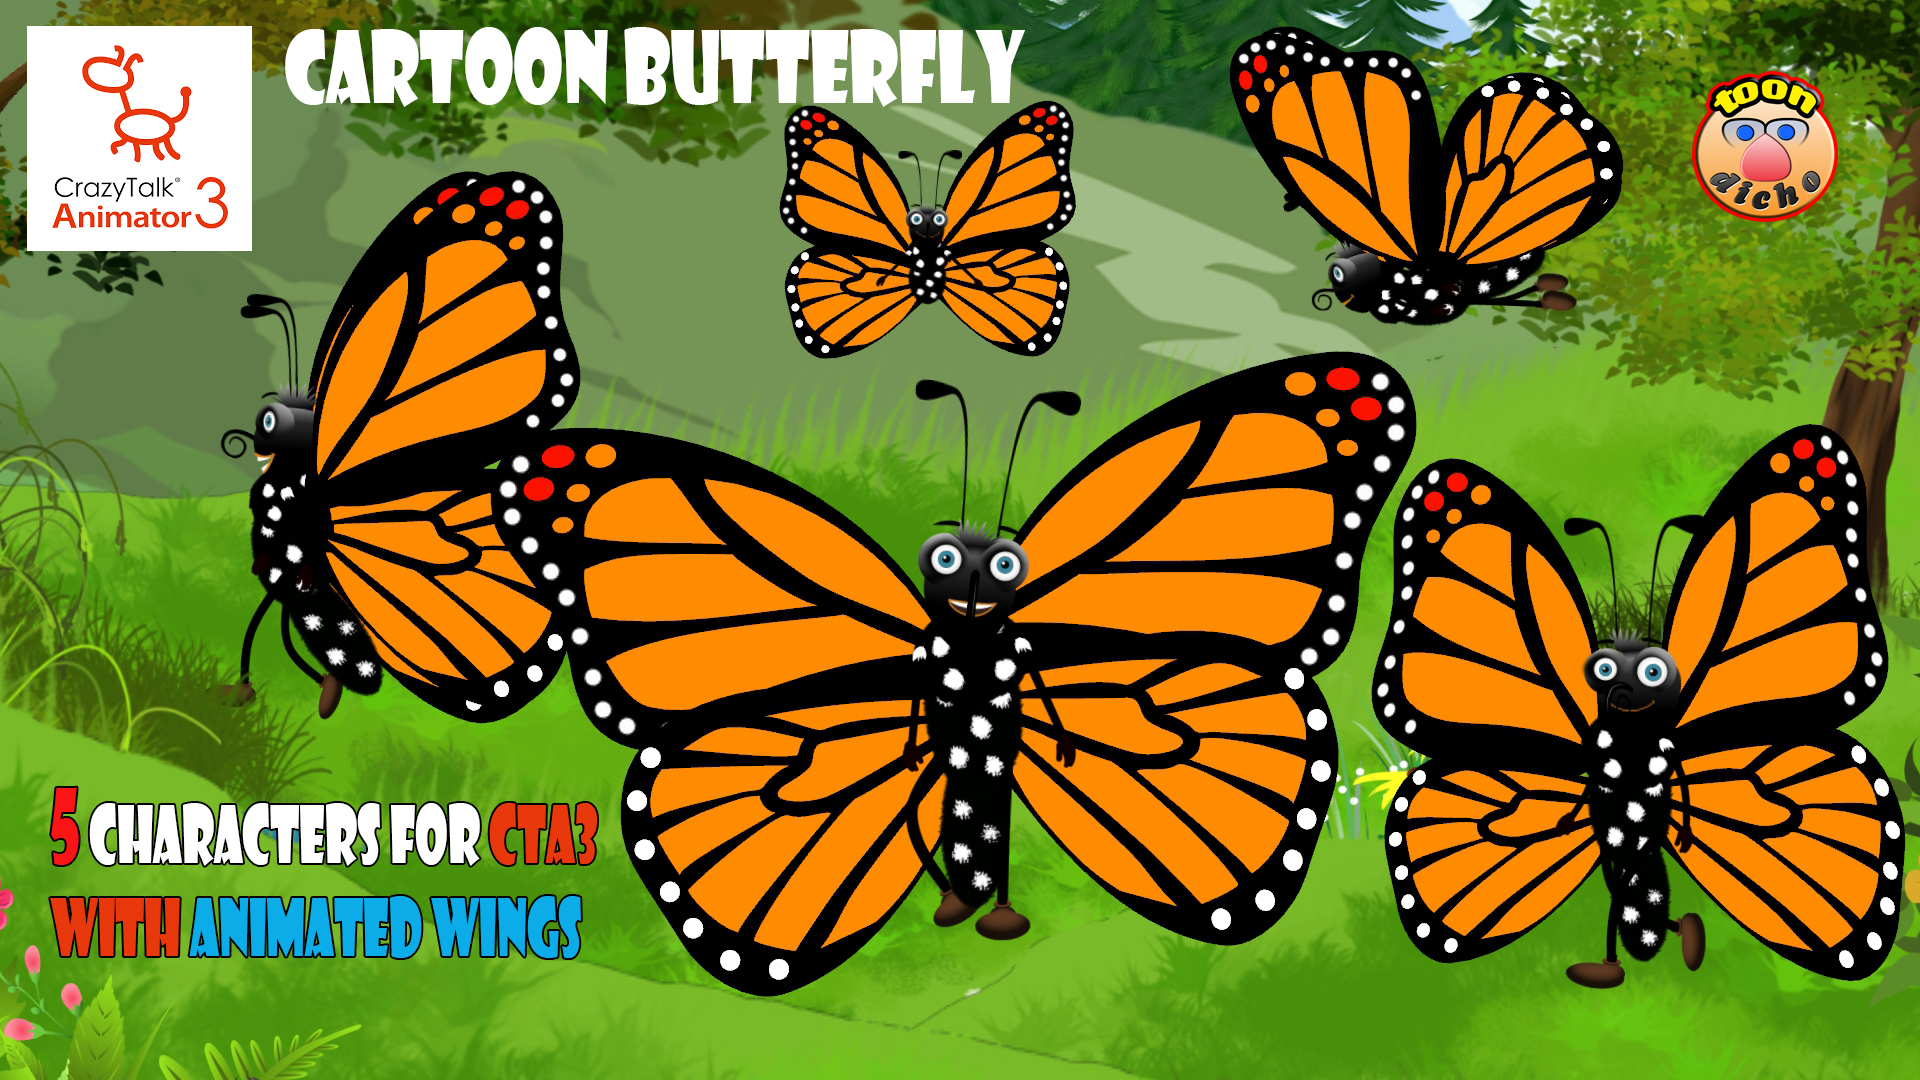 Cartoon Butterfly (Flying)-F - Reallusion Marketplace